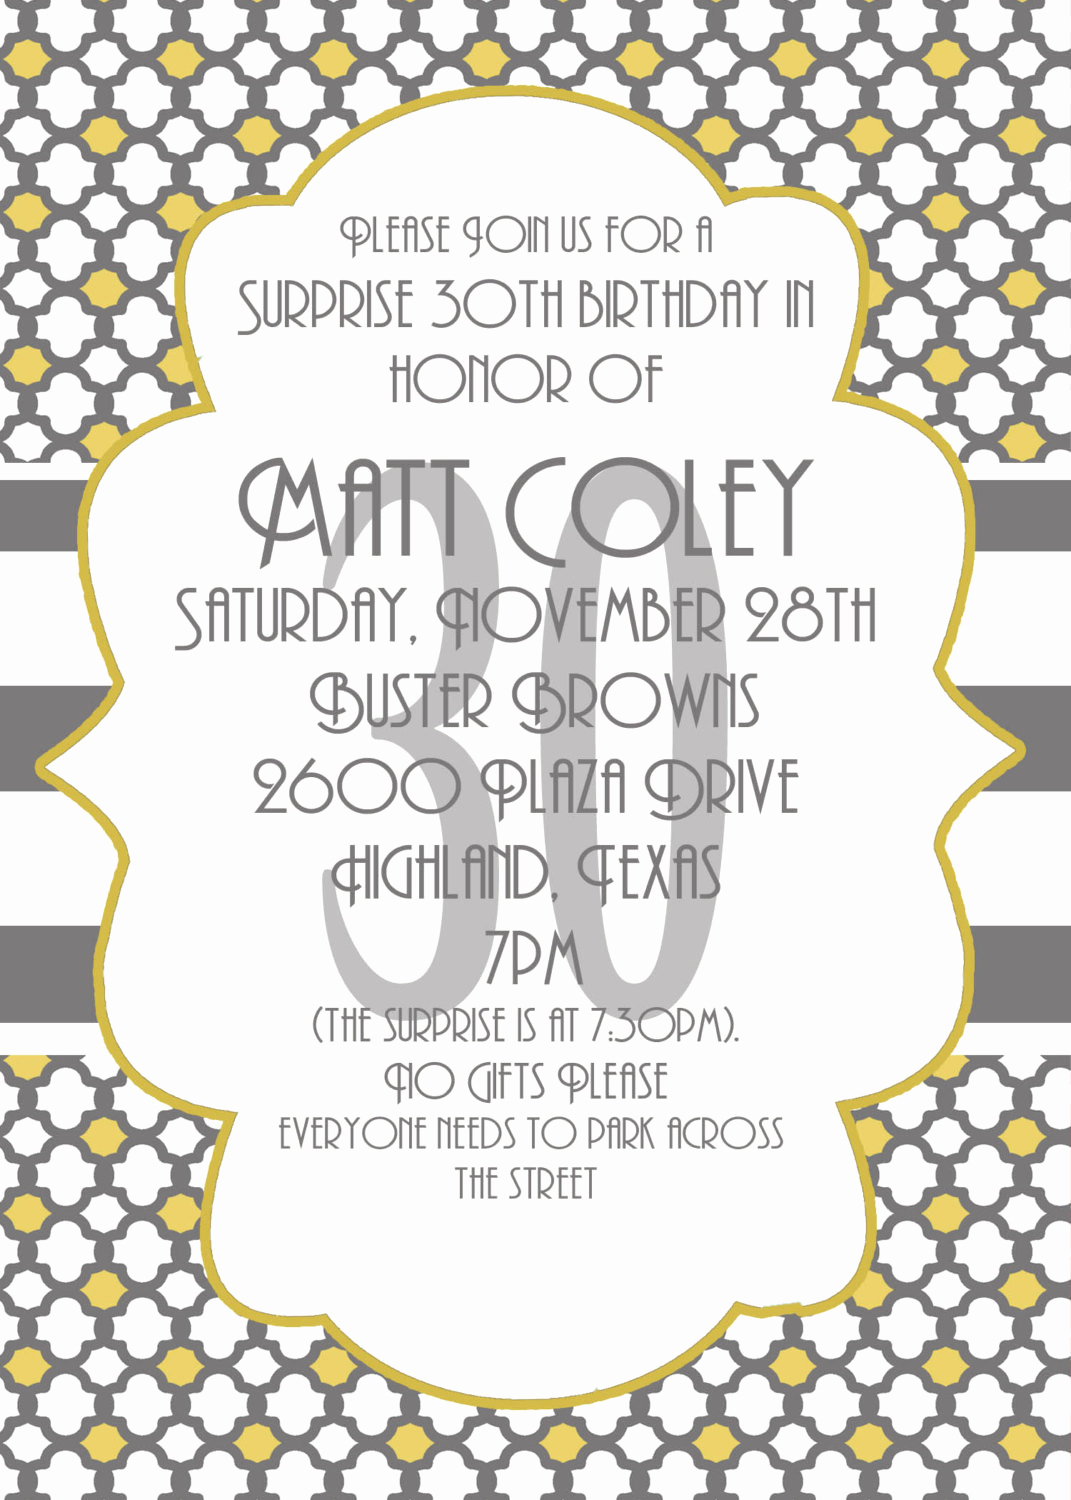 Suprise Birthday Party Invitation Inspirational Surprise Party Invitation 30th Birthday Invitation by